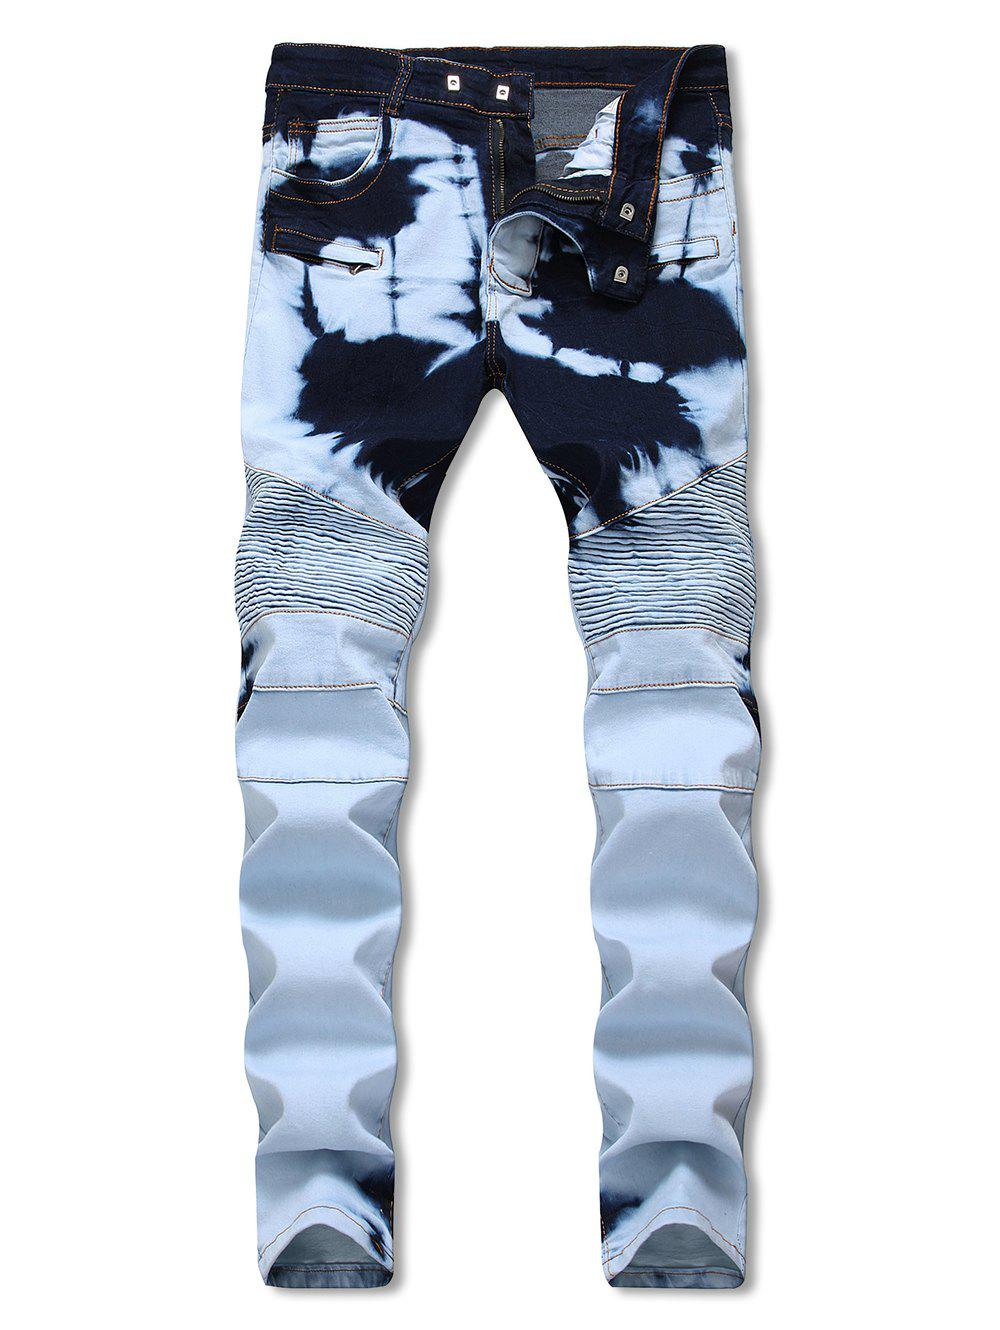 Buy Hidden Zipper Decorated Stretchy Biker Jeans